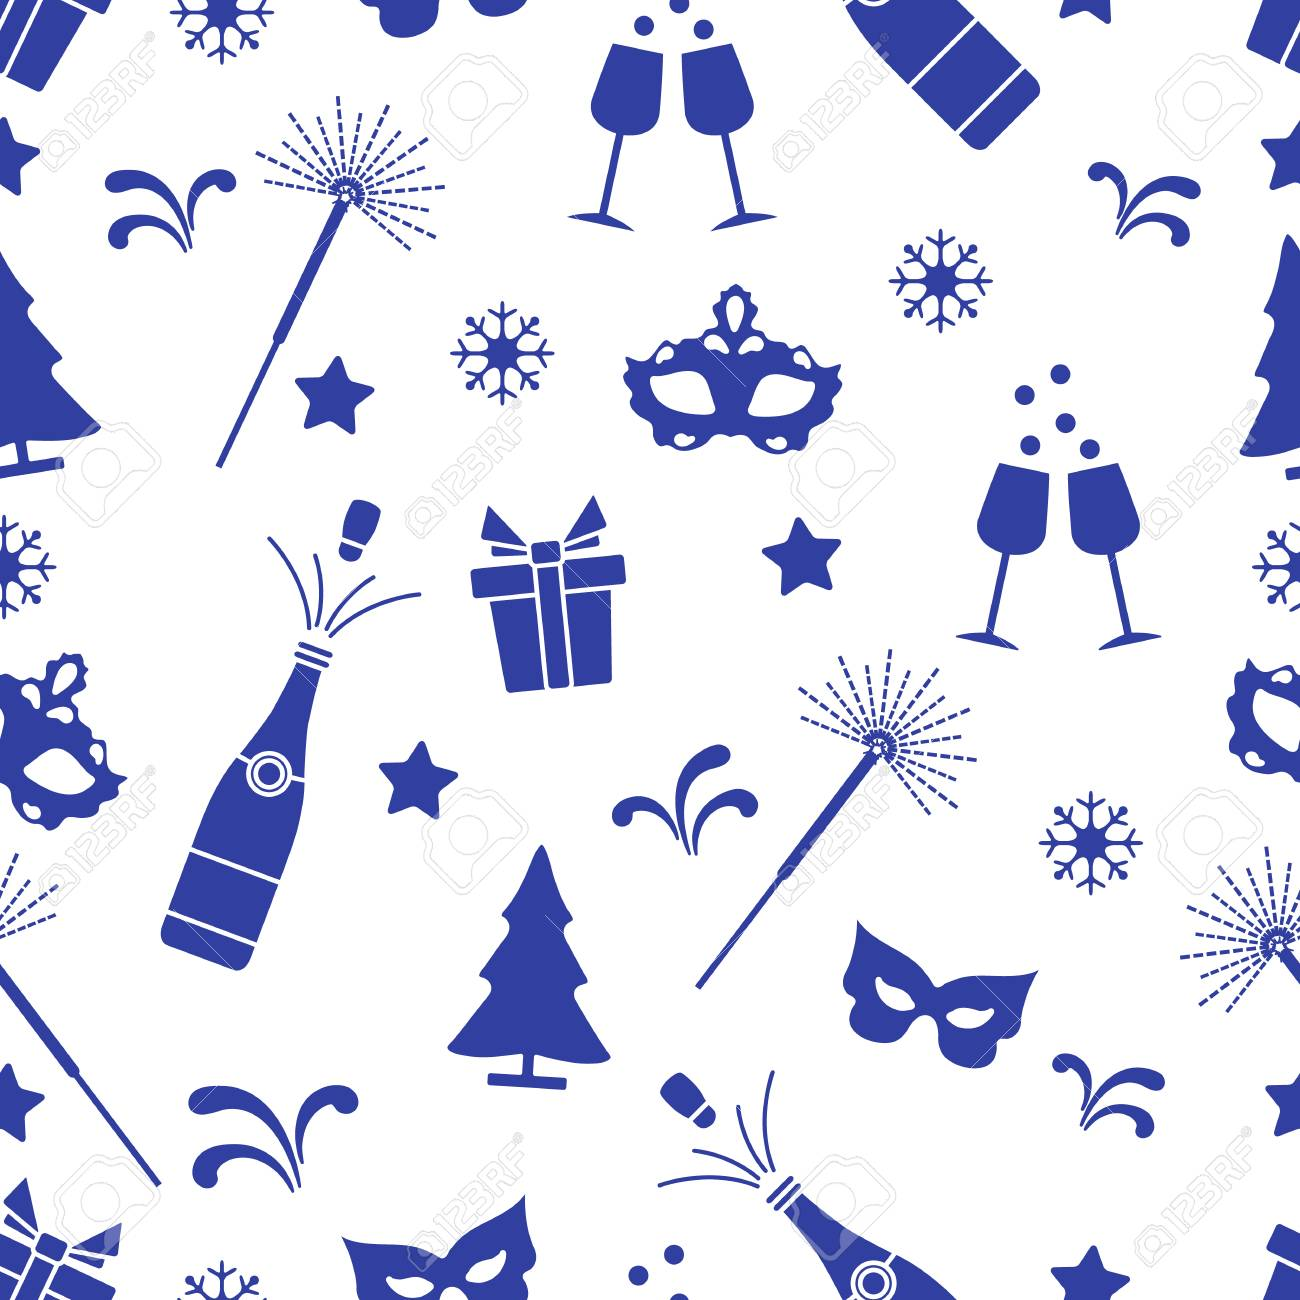 seamless pattern with new year symbols gifts fireworks bottle and glasses with champagne